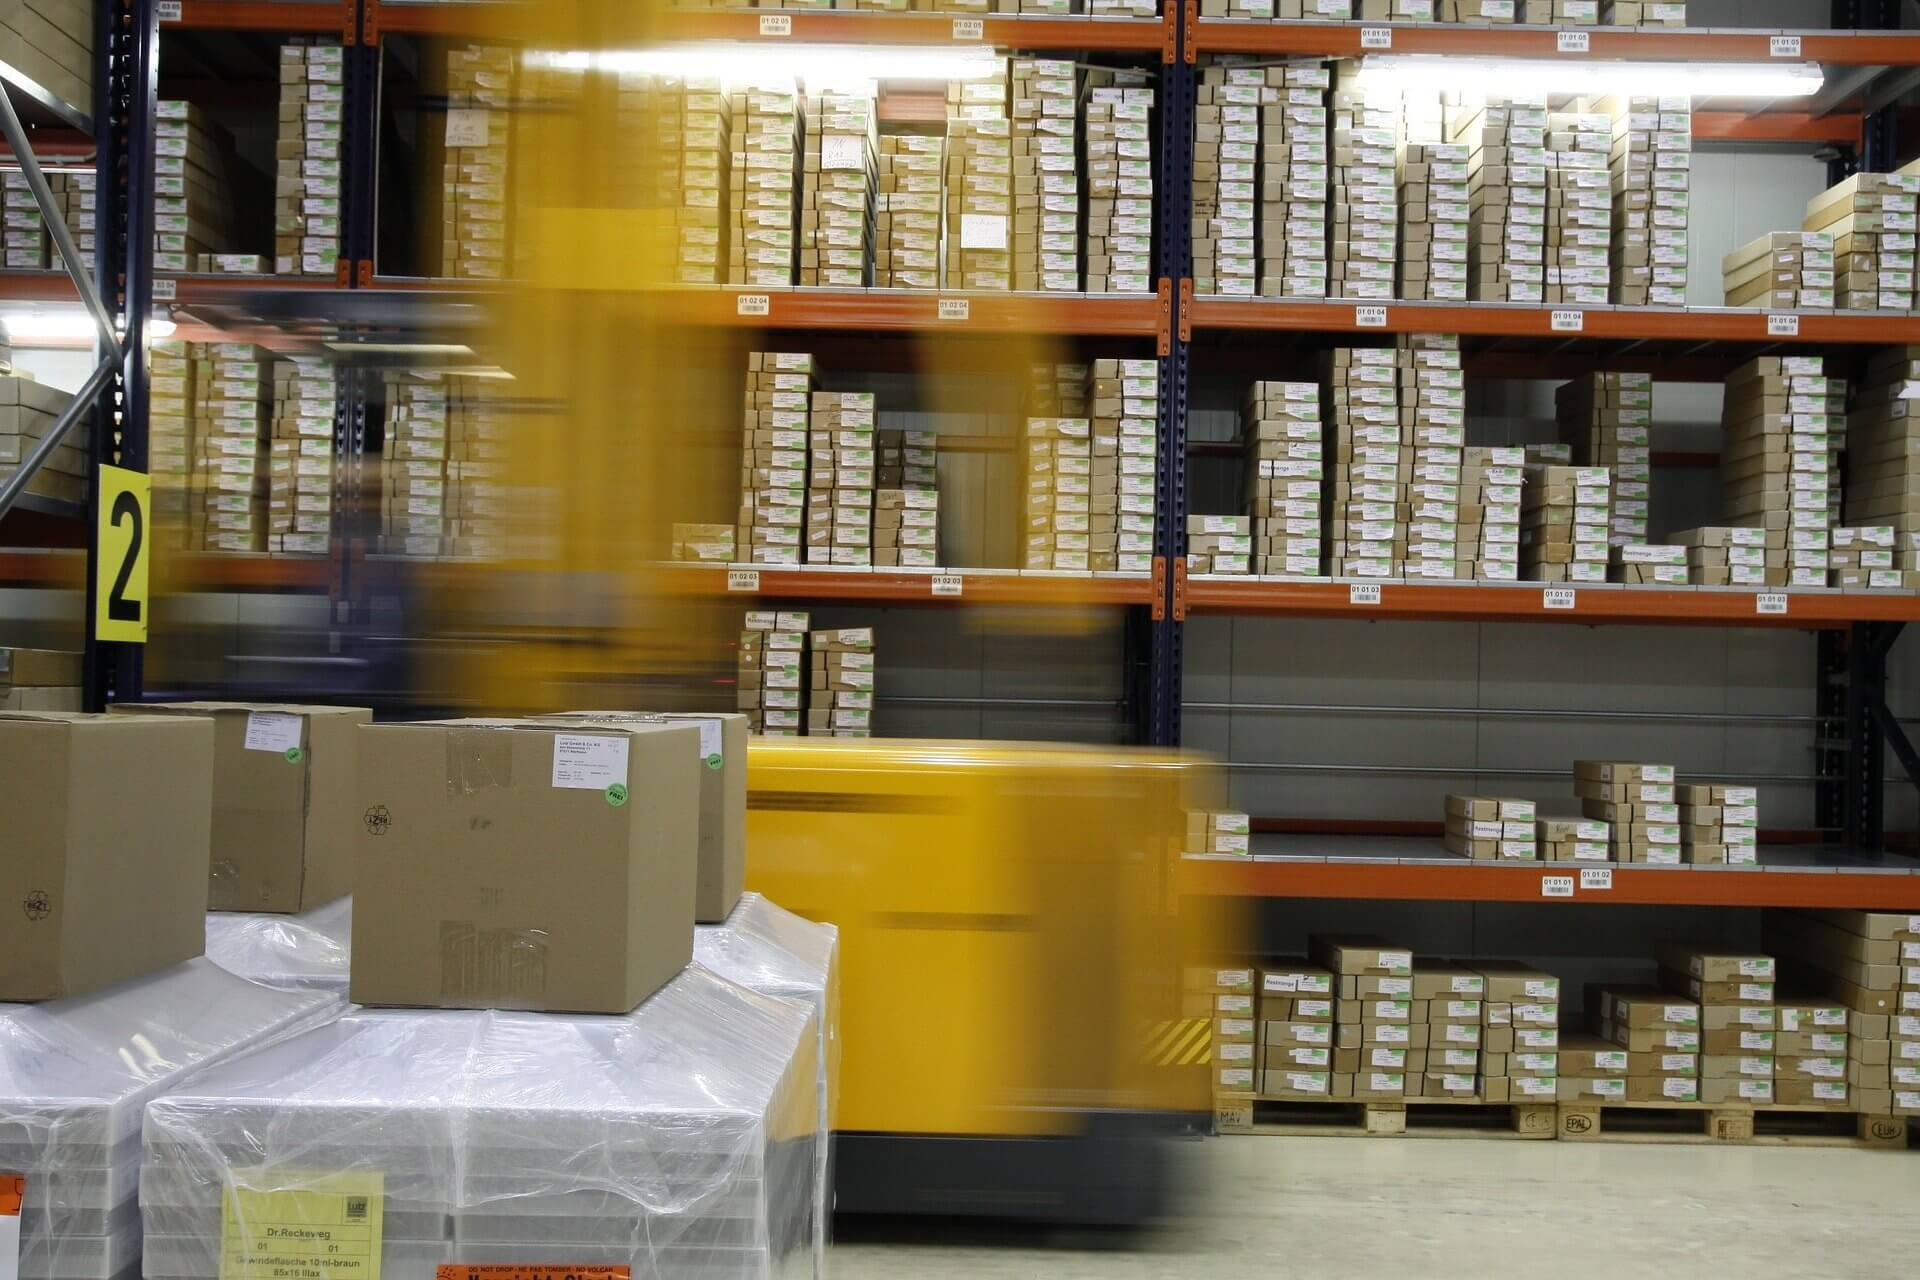 warehouse with shelves and different sized boxes on the shelves and a forklift moving through an isle.